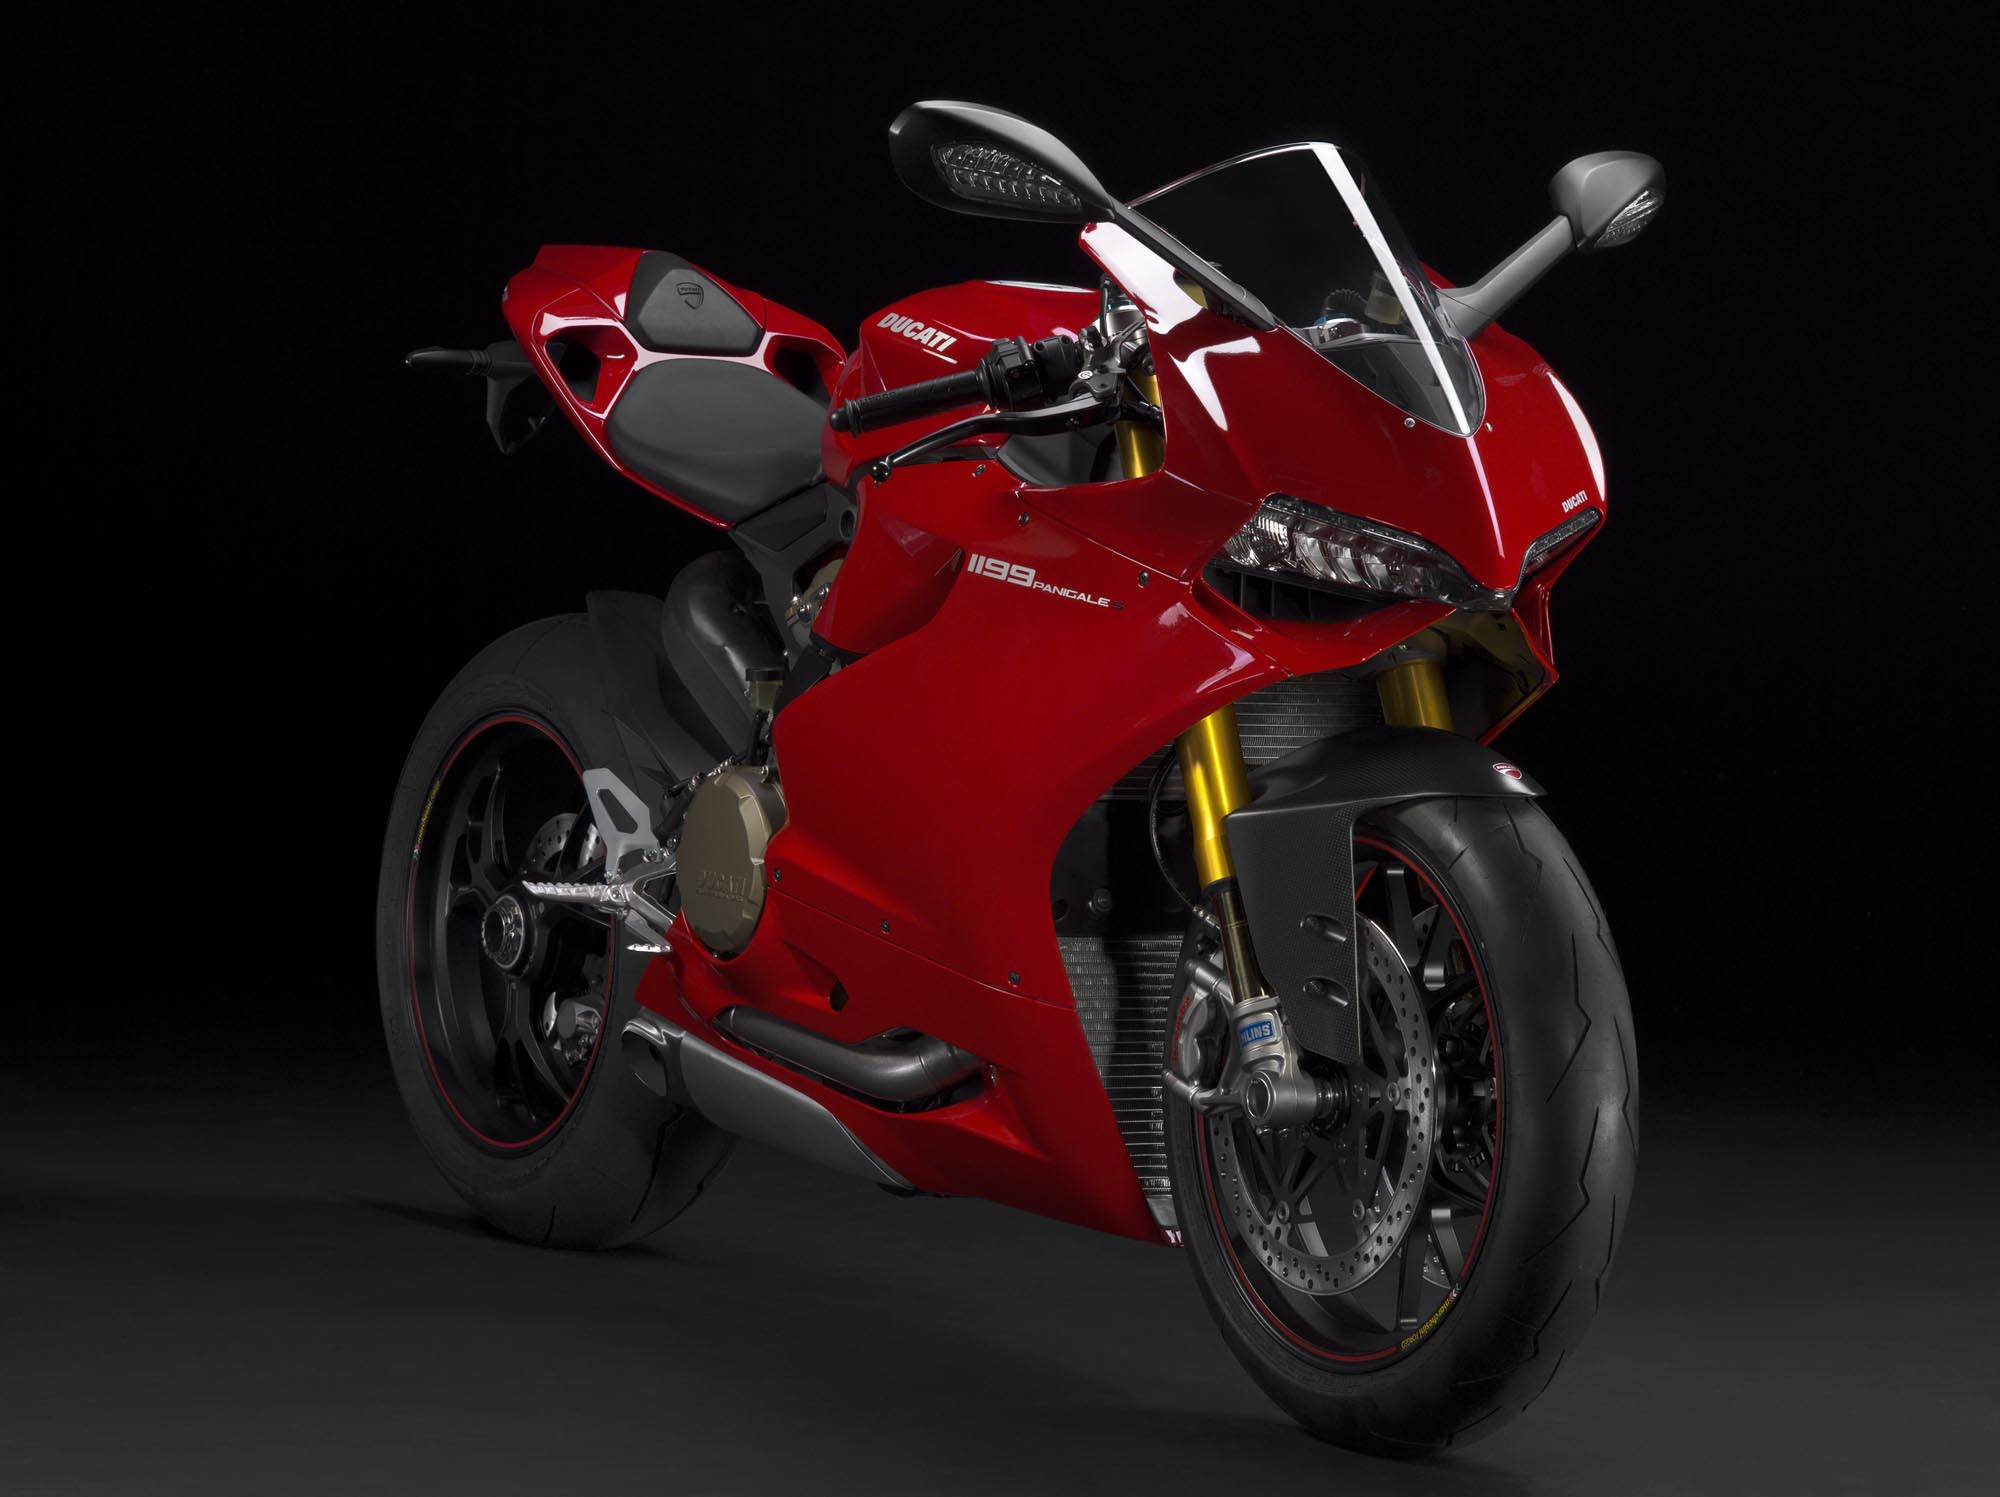 2012 Ducati 1199 Panigale Redefines the Word 'Superbike' - Asphalt ...